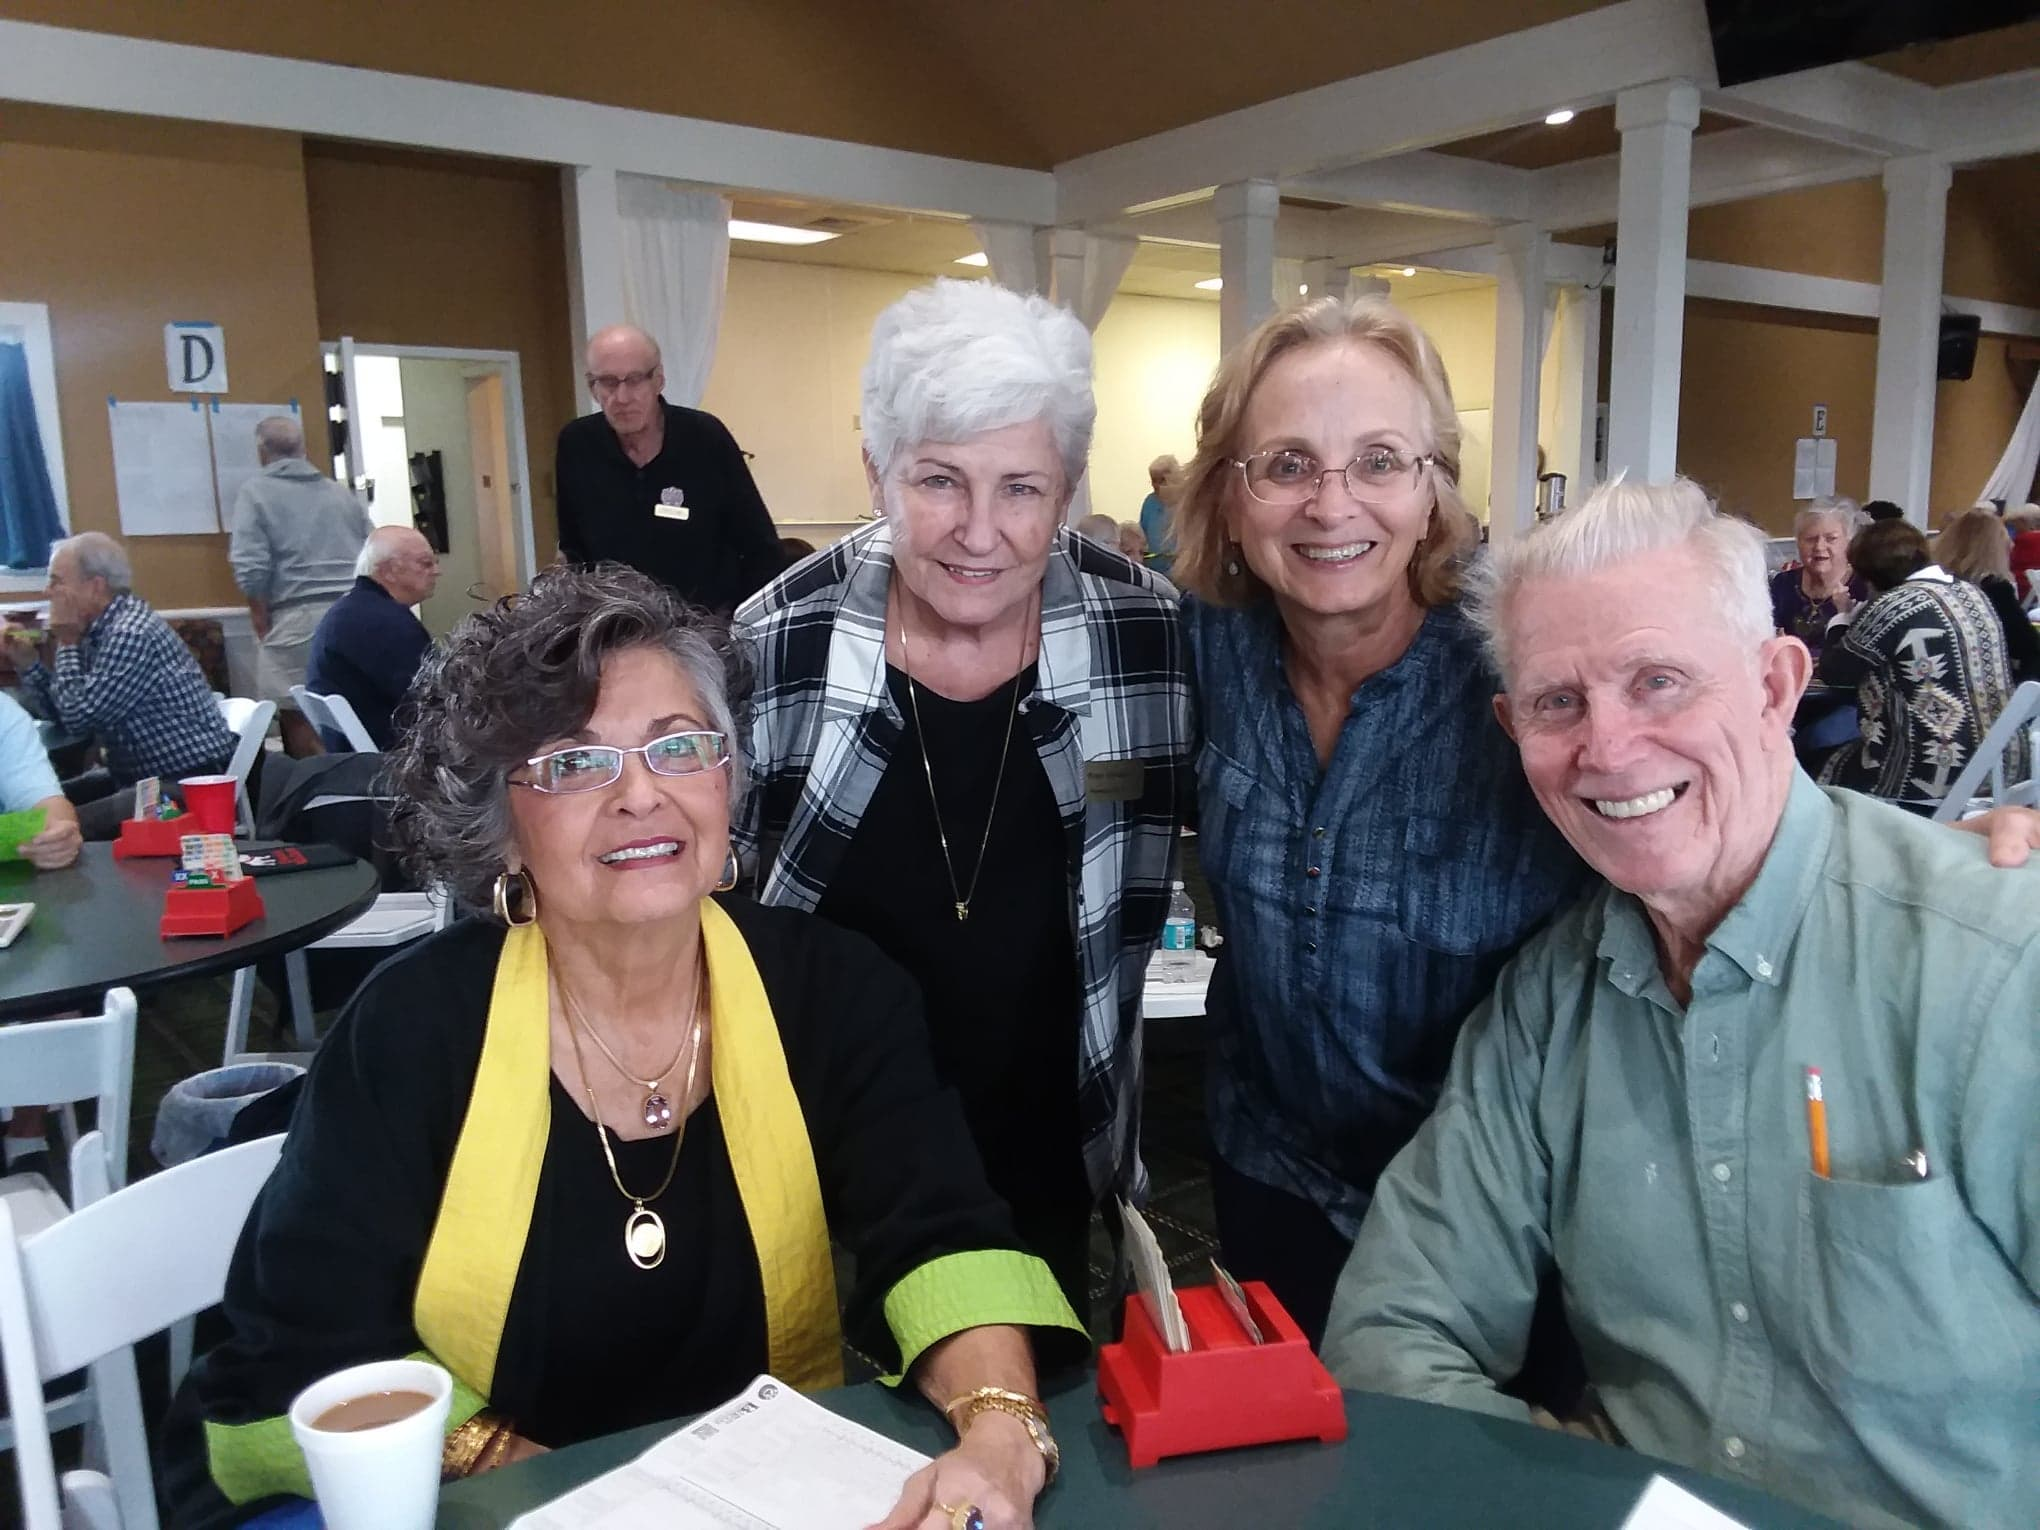 Joyce Gardner, Fran Viviano, Mary Cummins, our outstanding partnership chair & Billy Sanders